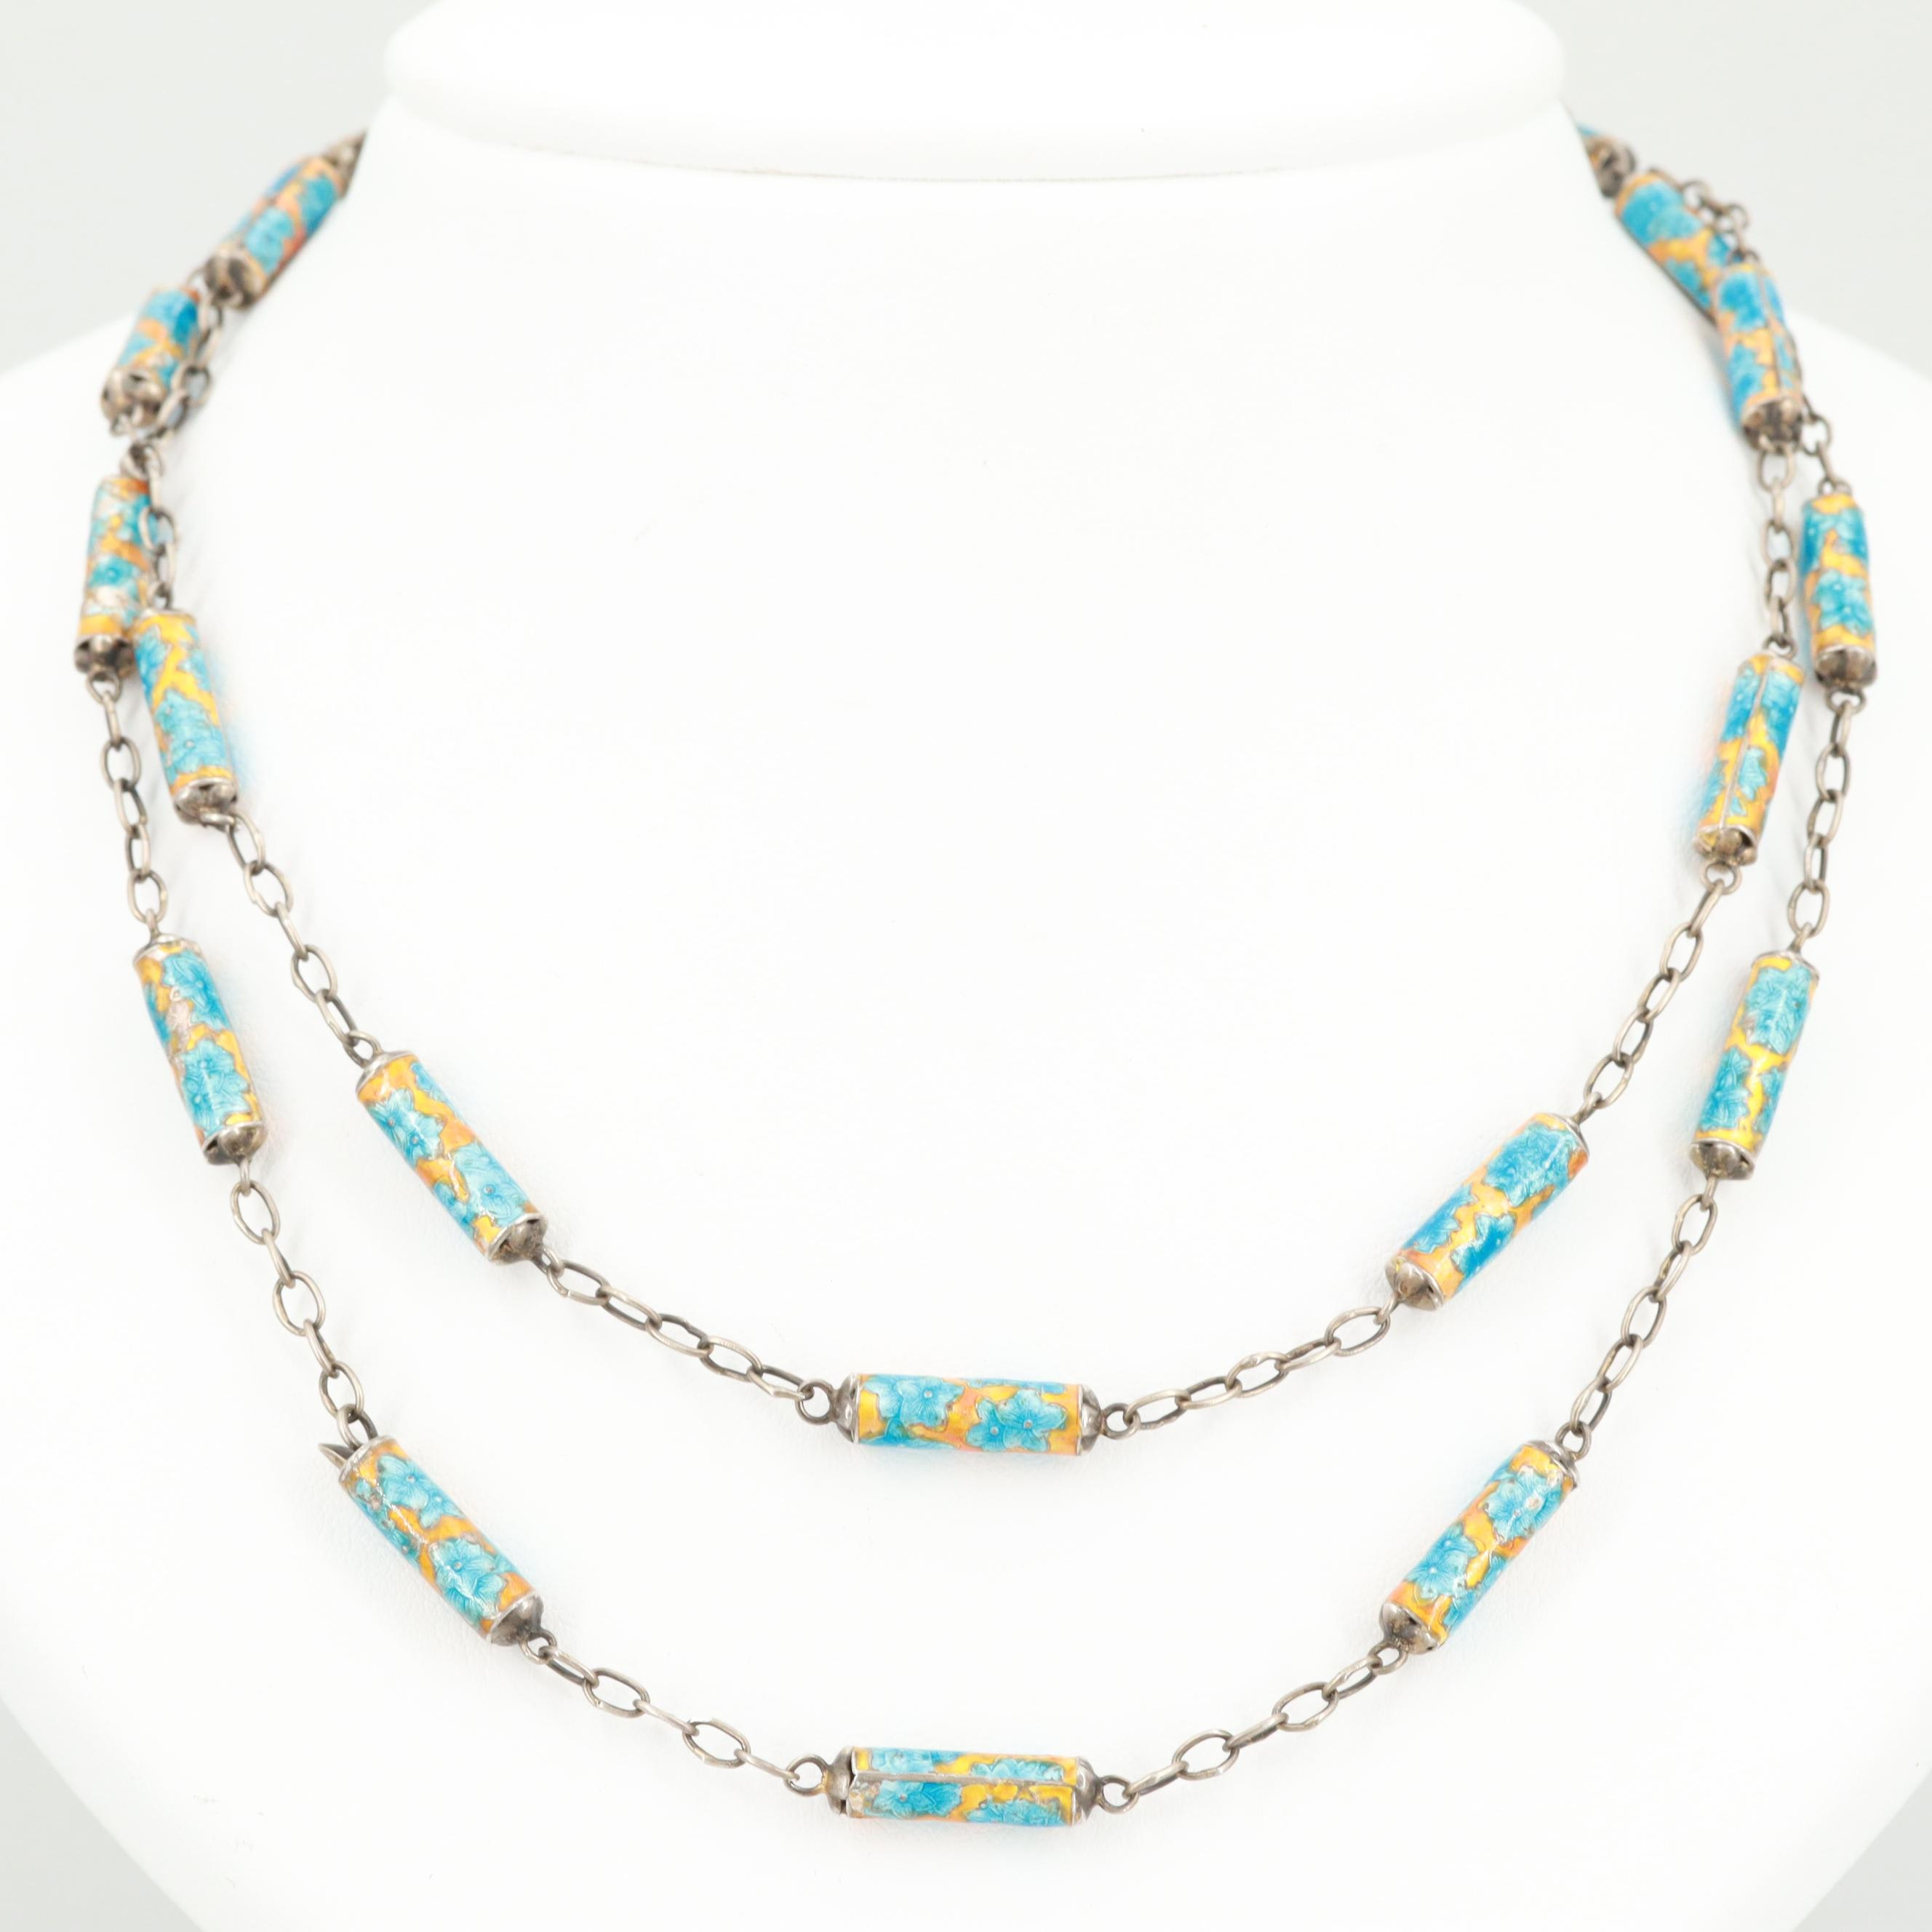 Chinese Sterling Silver Enamel Beaded Necklace